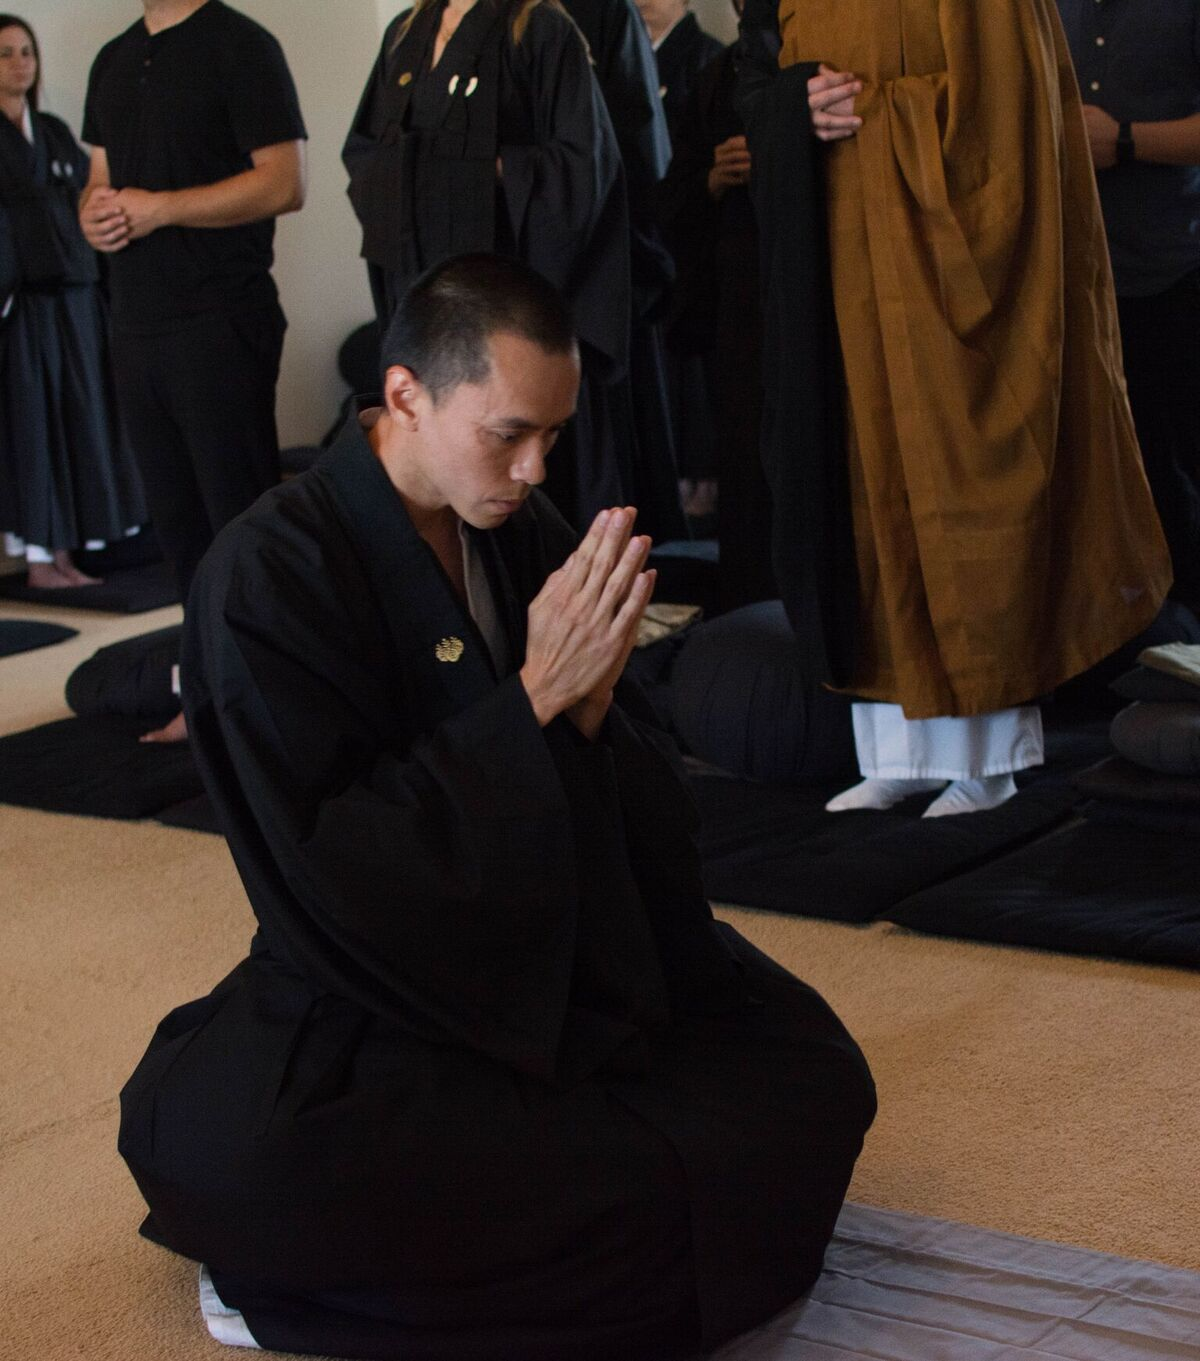 Juzen bowing3